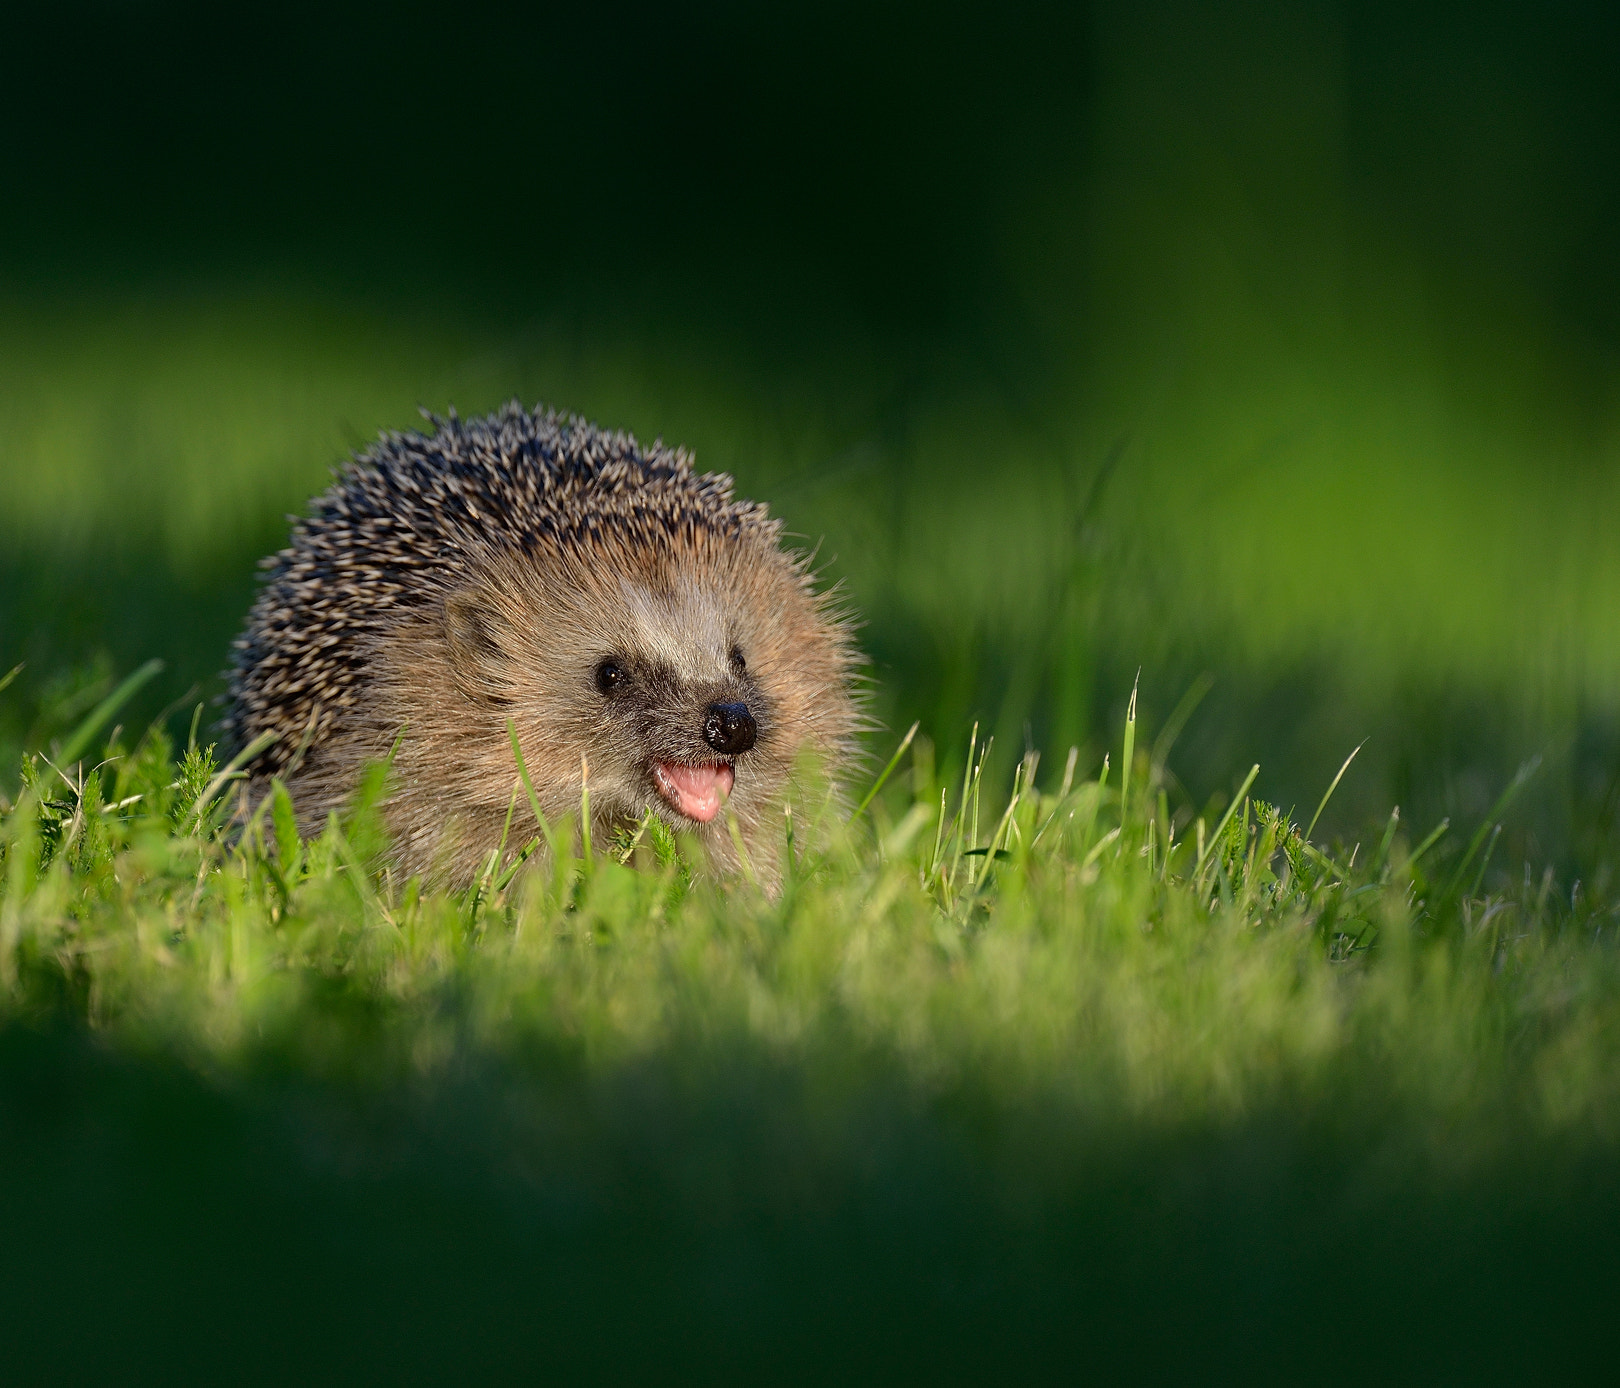 Photograph Hedgehog by Ronnie Bergström on 500px